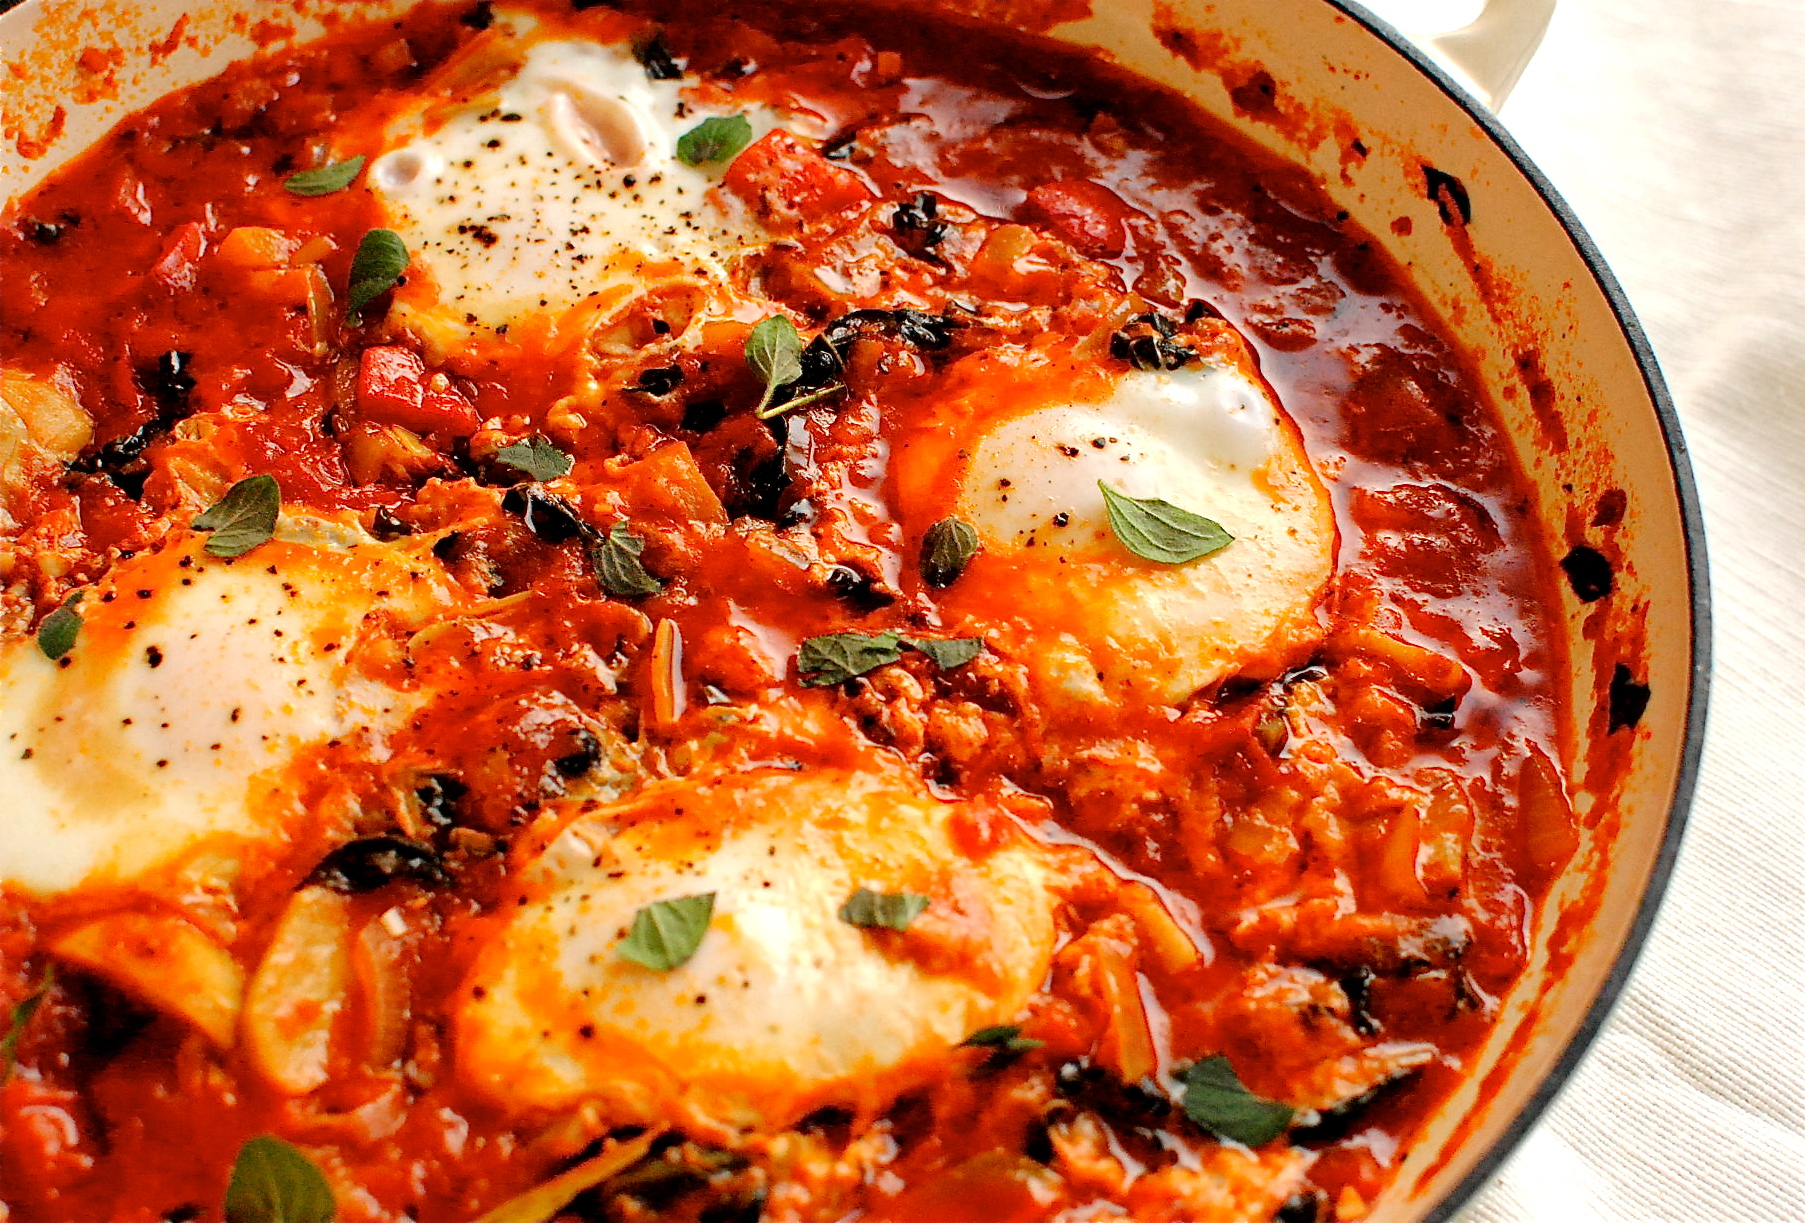 Easy shakshuka spiced north african tomato and eggs food to glow easy shakshuka spiced north african tomato and eggs forumfinder Image collections